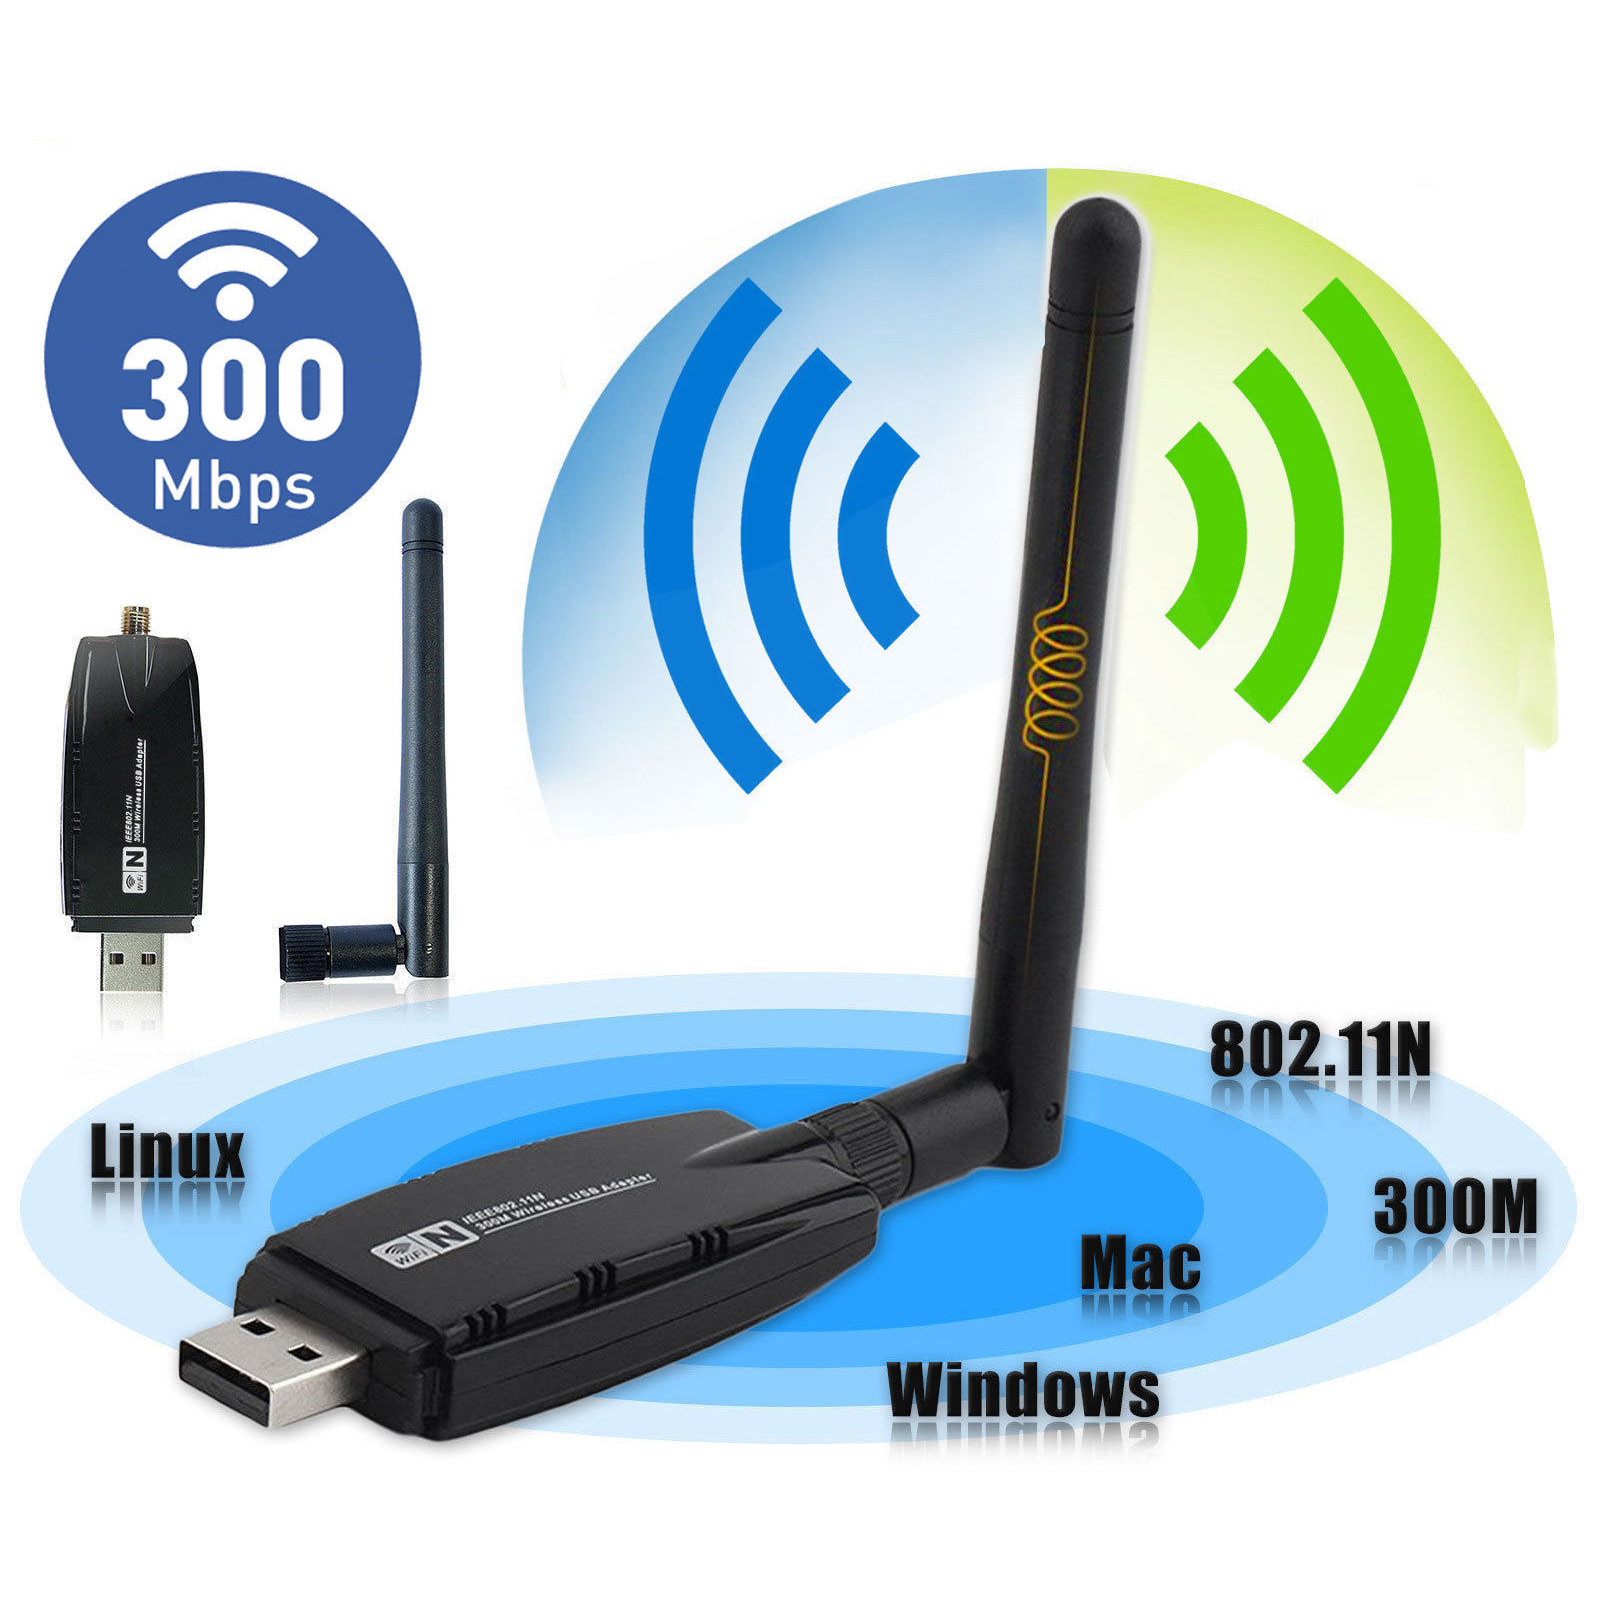 300Mbps Wireless USB WiFi Router Adapter Dongle Network LAN Card 802.11b/g/n with Antenna